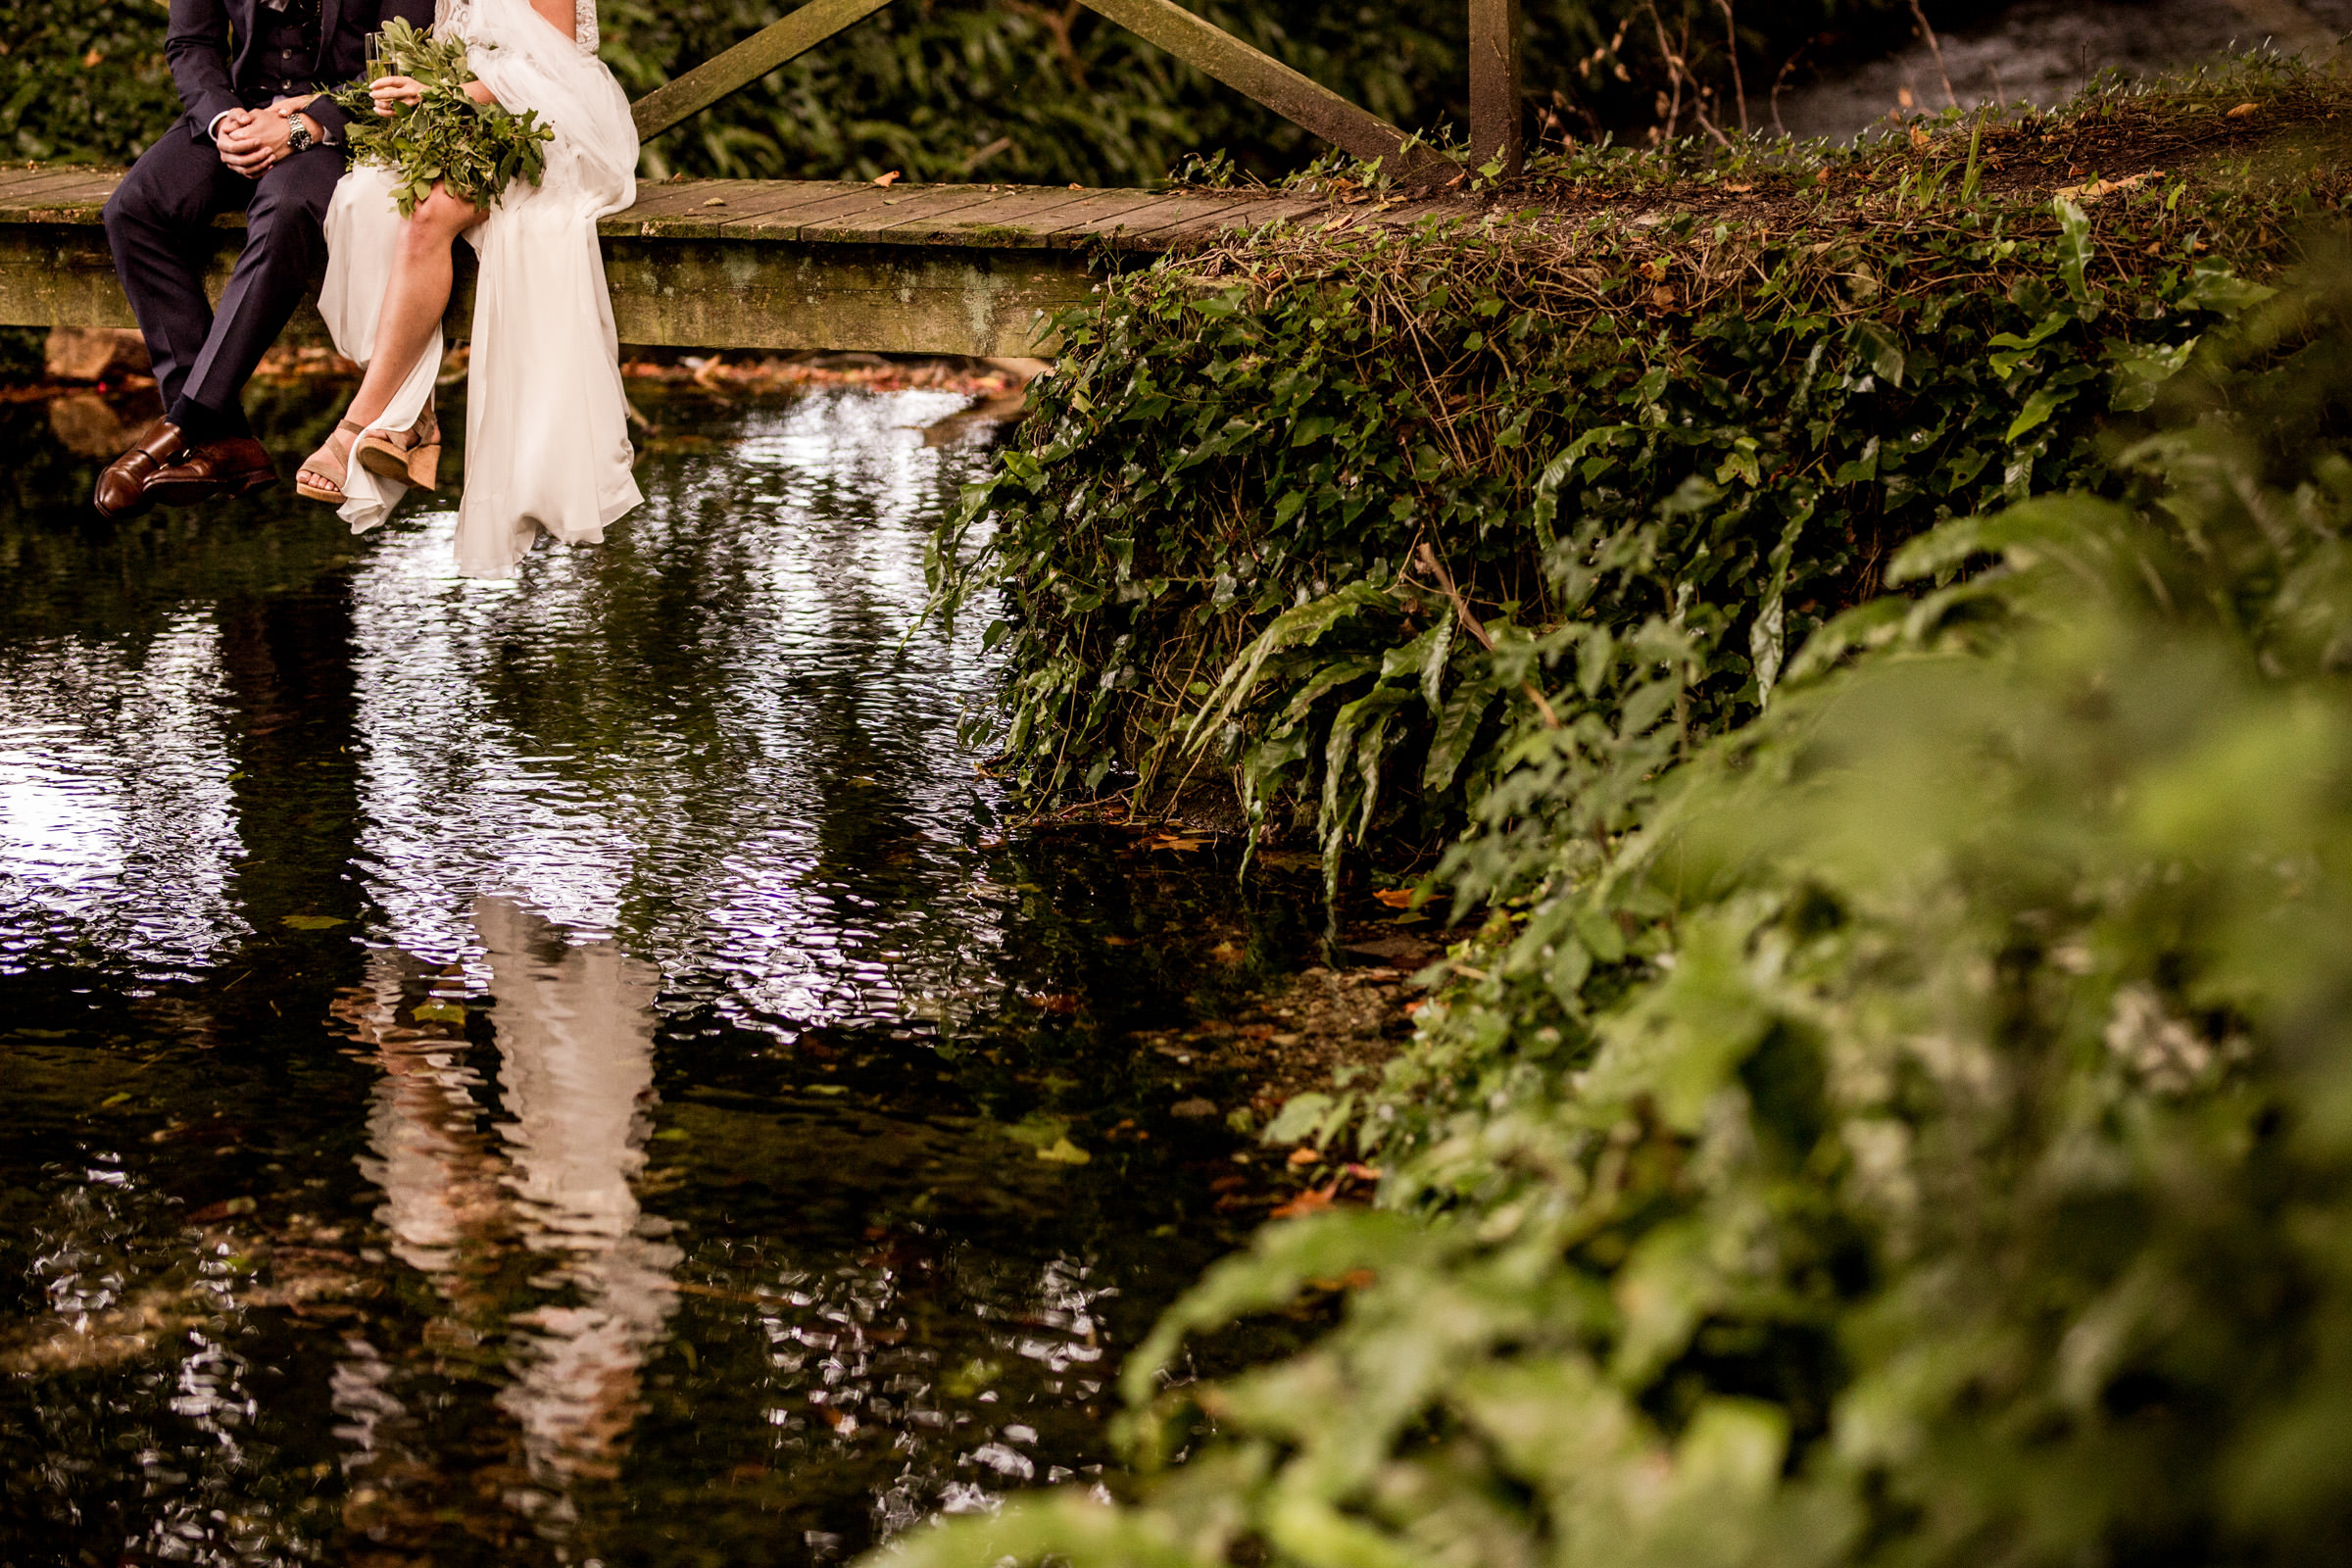 natural dorset wedding photographers 026.jpg